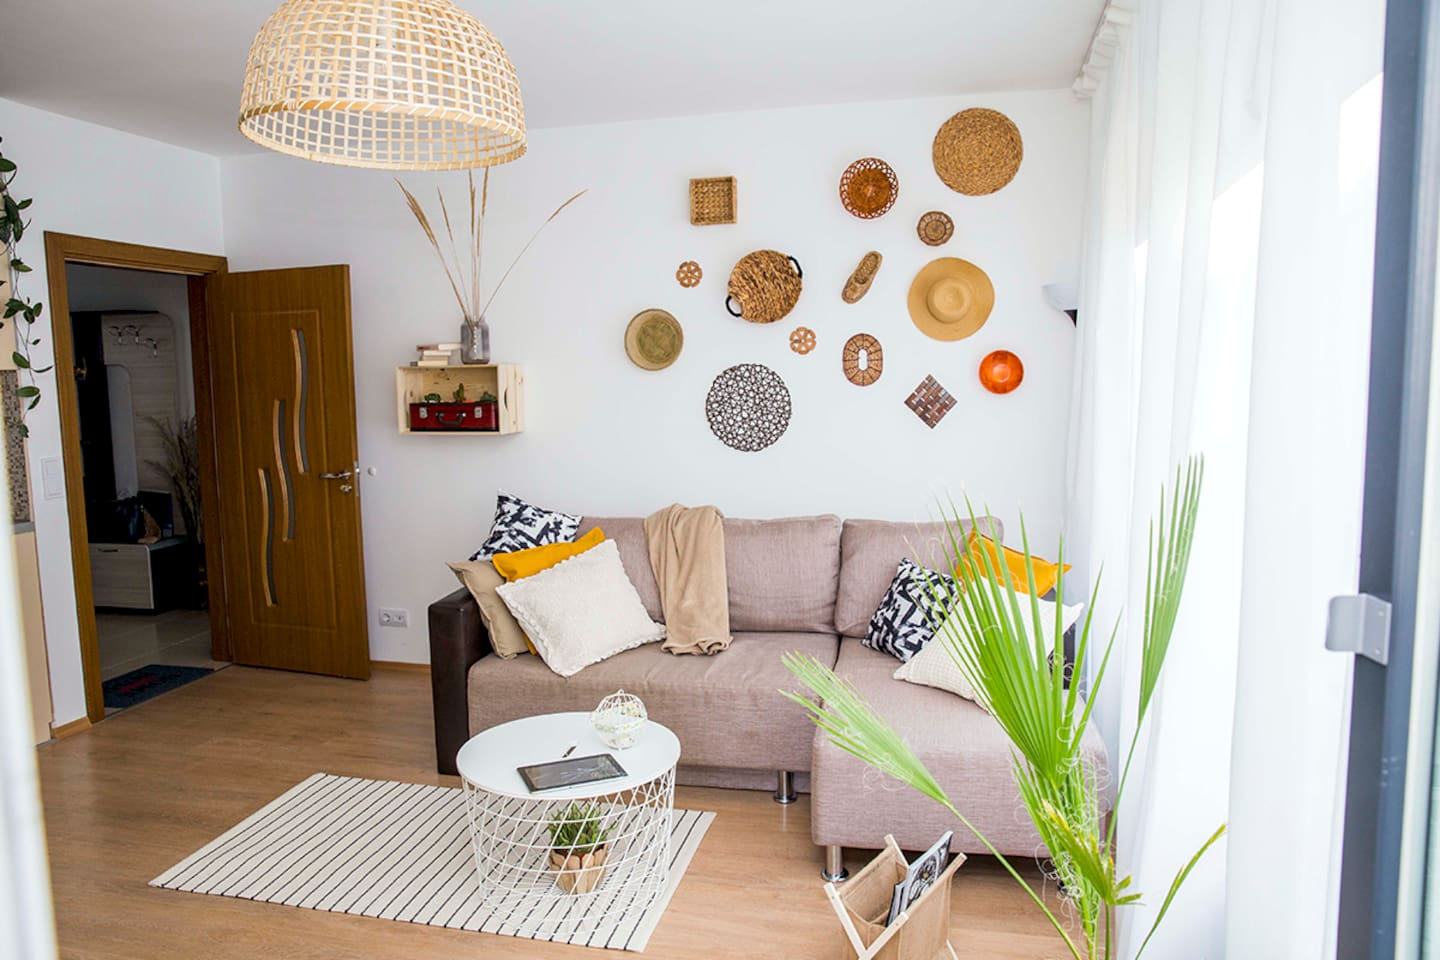 Spacious, cozy and full of natural light Living Room with lovely artistic decor.